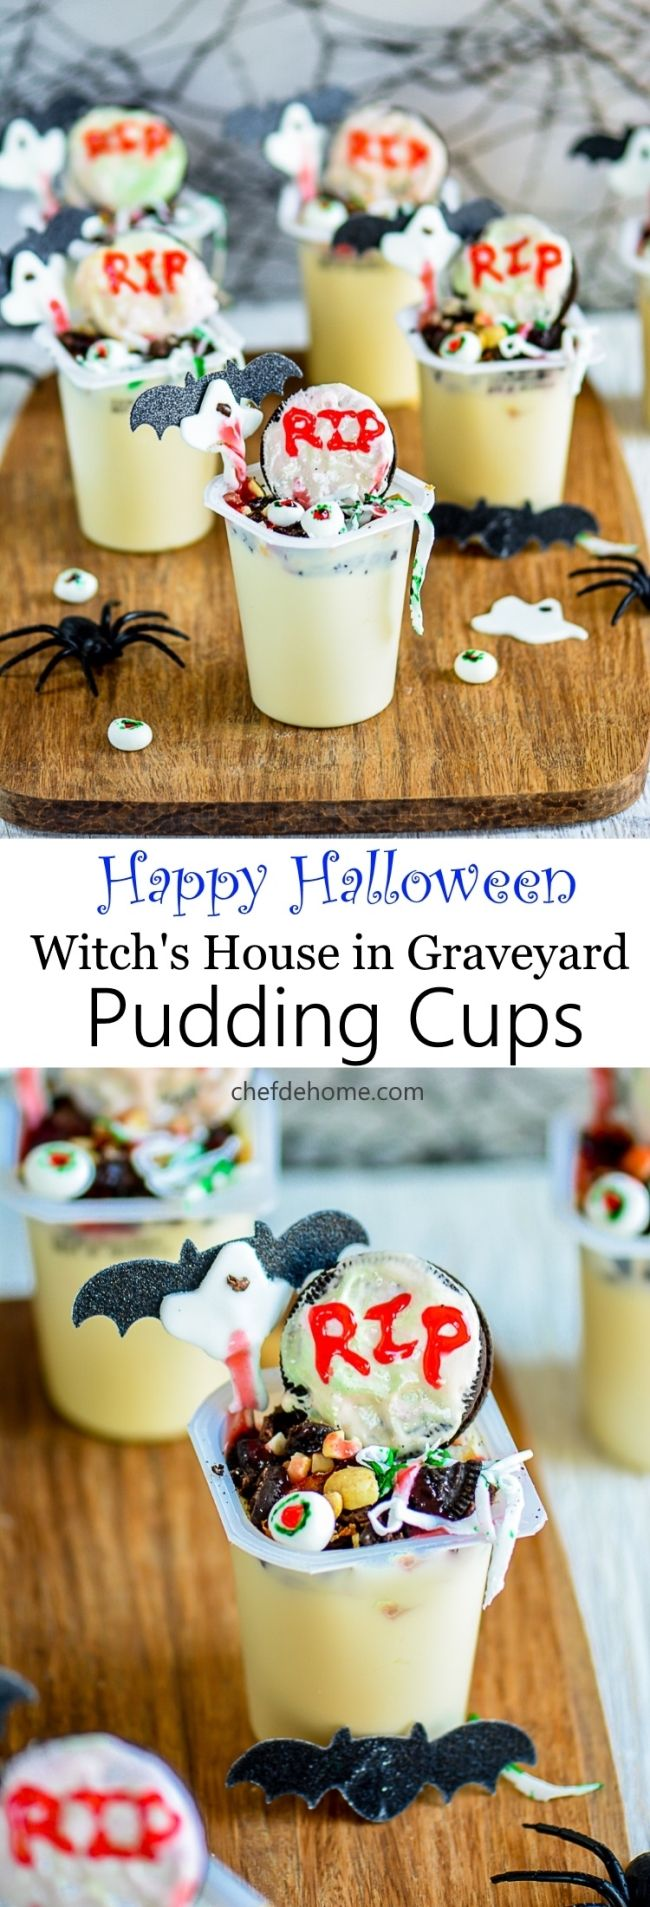 Halloween Fun Snack for Kids with Snack Pack Pudding Cups Witch Graveyards Very easy to assemble | chefdehome.com